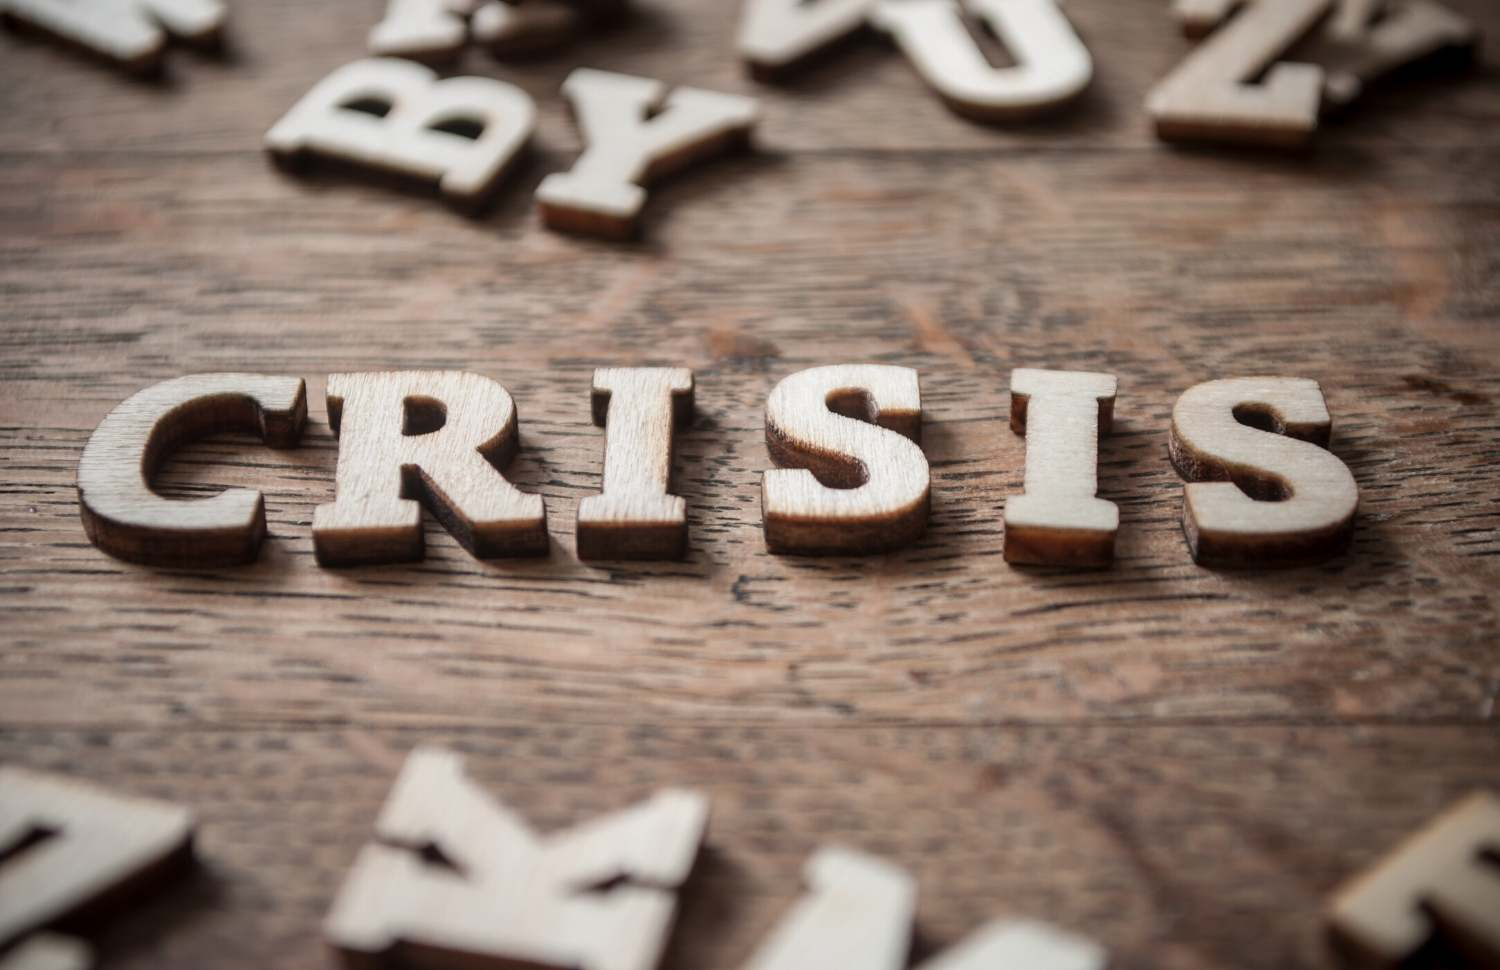 5 Keys to Demonstrating Strong Leadership During Times of Crisis